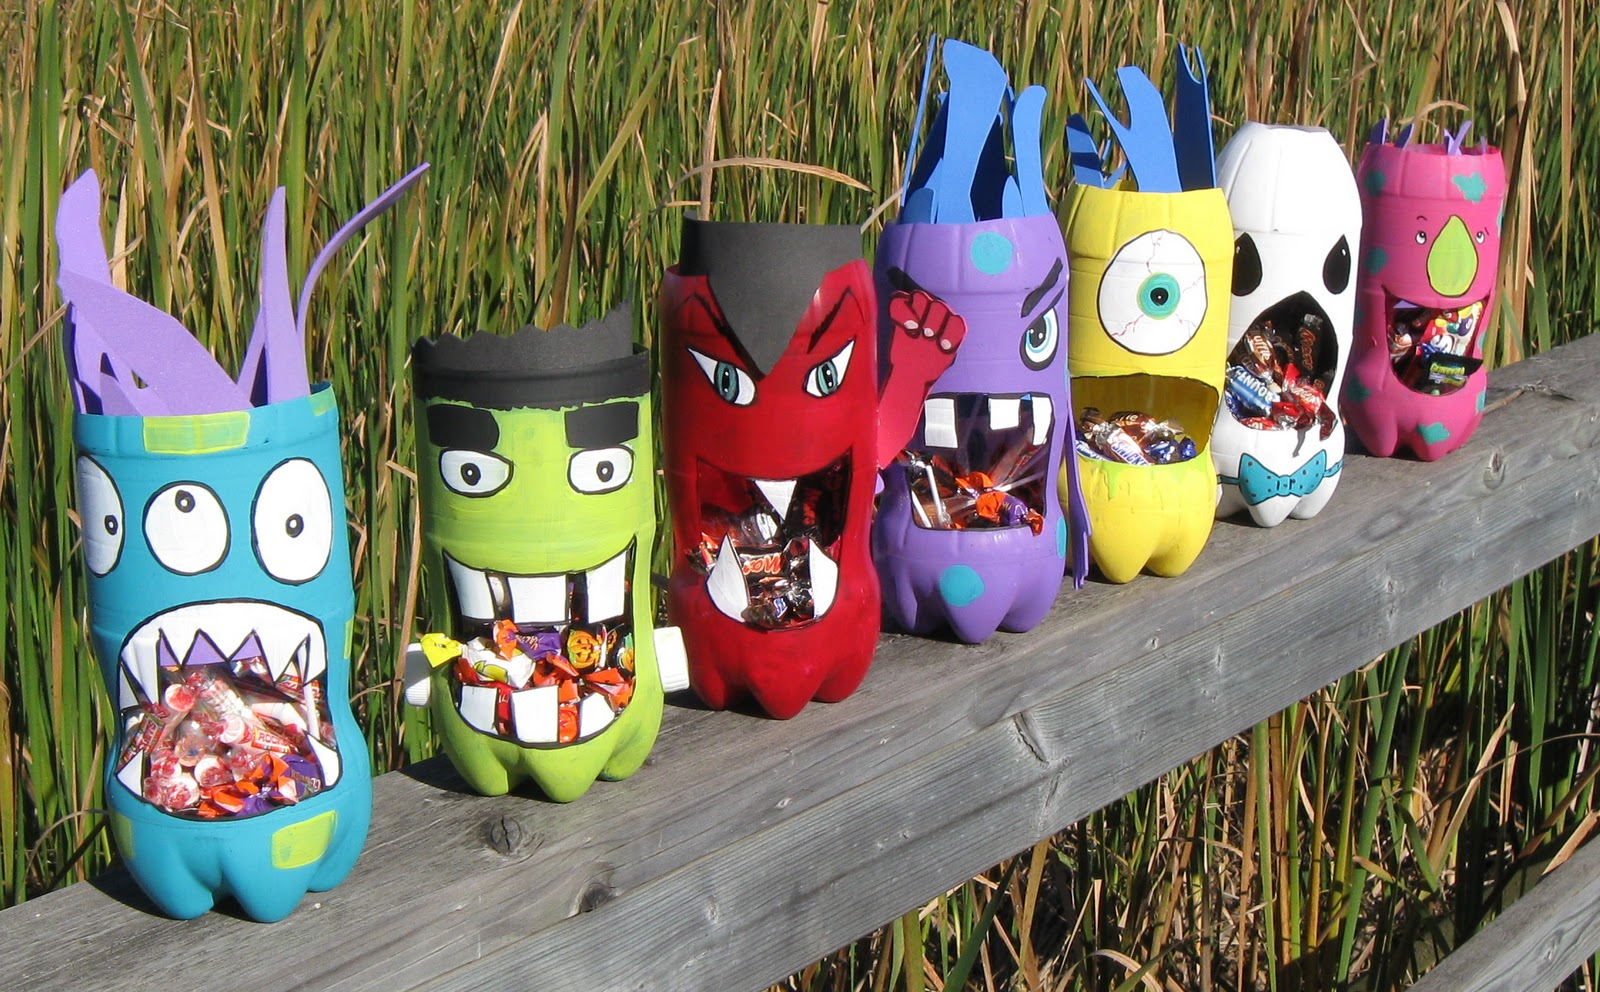 Monster Crafts http://easypreschoolcraft.blogspot.com/2012/06/halloween-recycled-bottle-monster.html